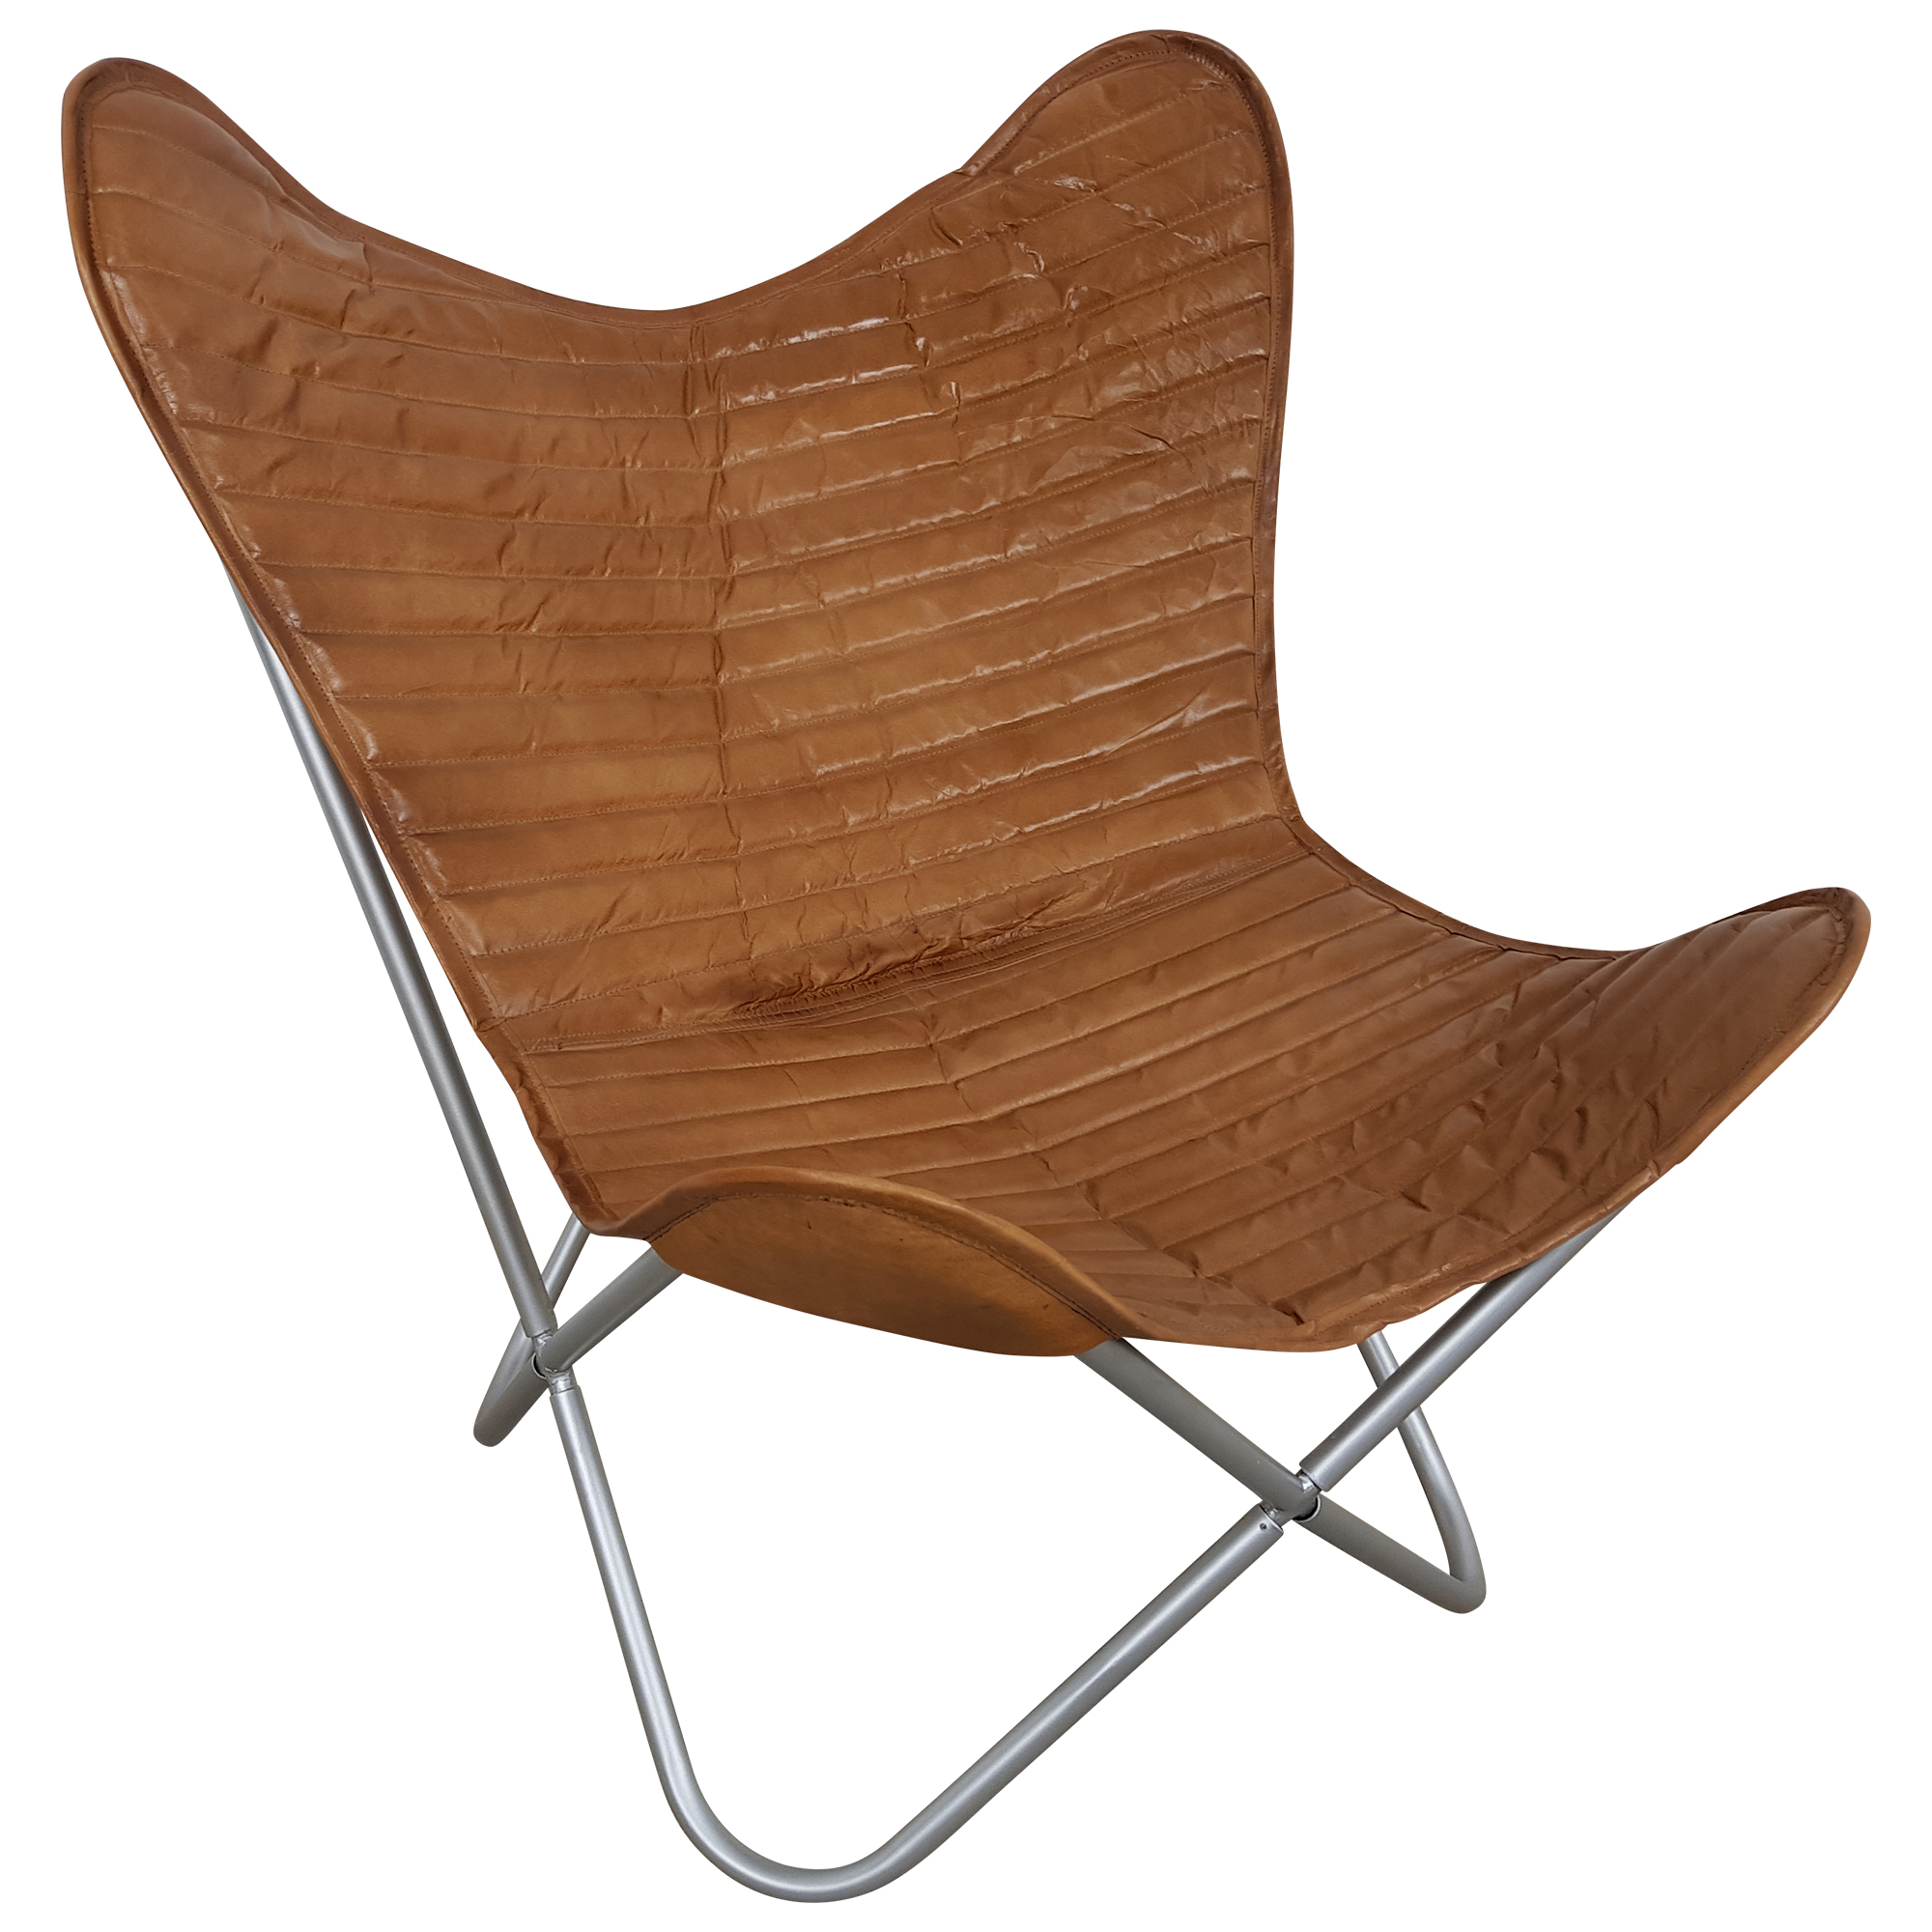 Butterfly Chair Sessel Design Lounge Stuhl Echt Leder